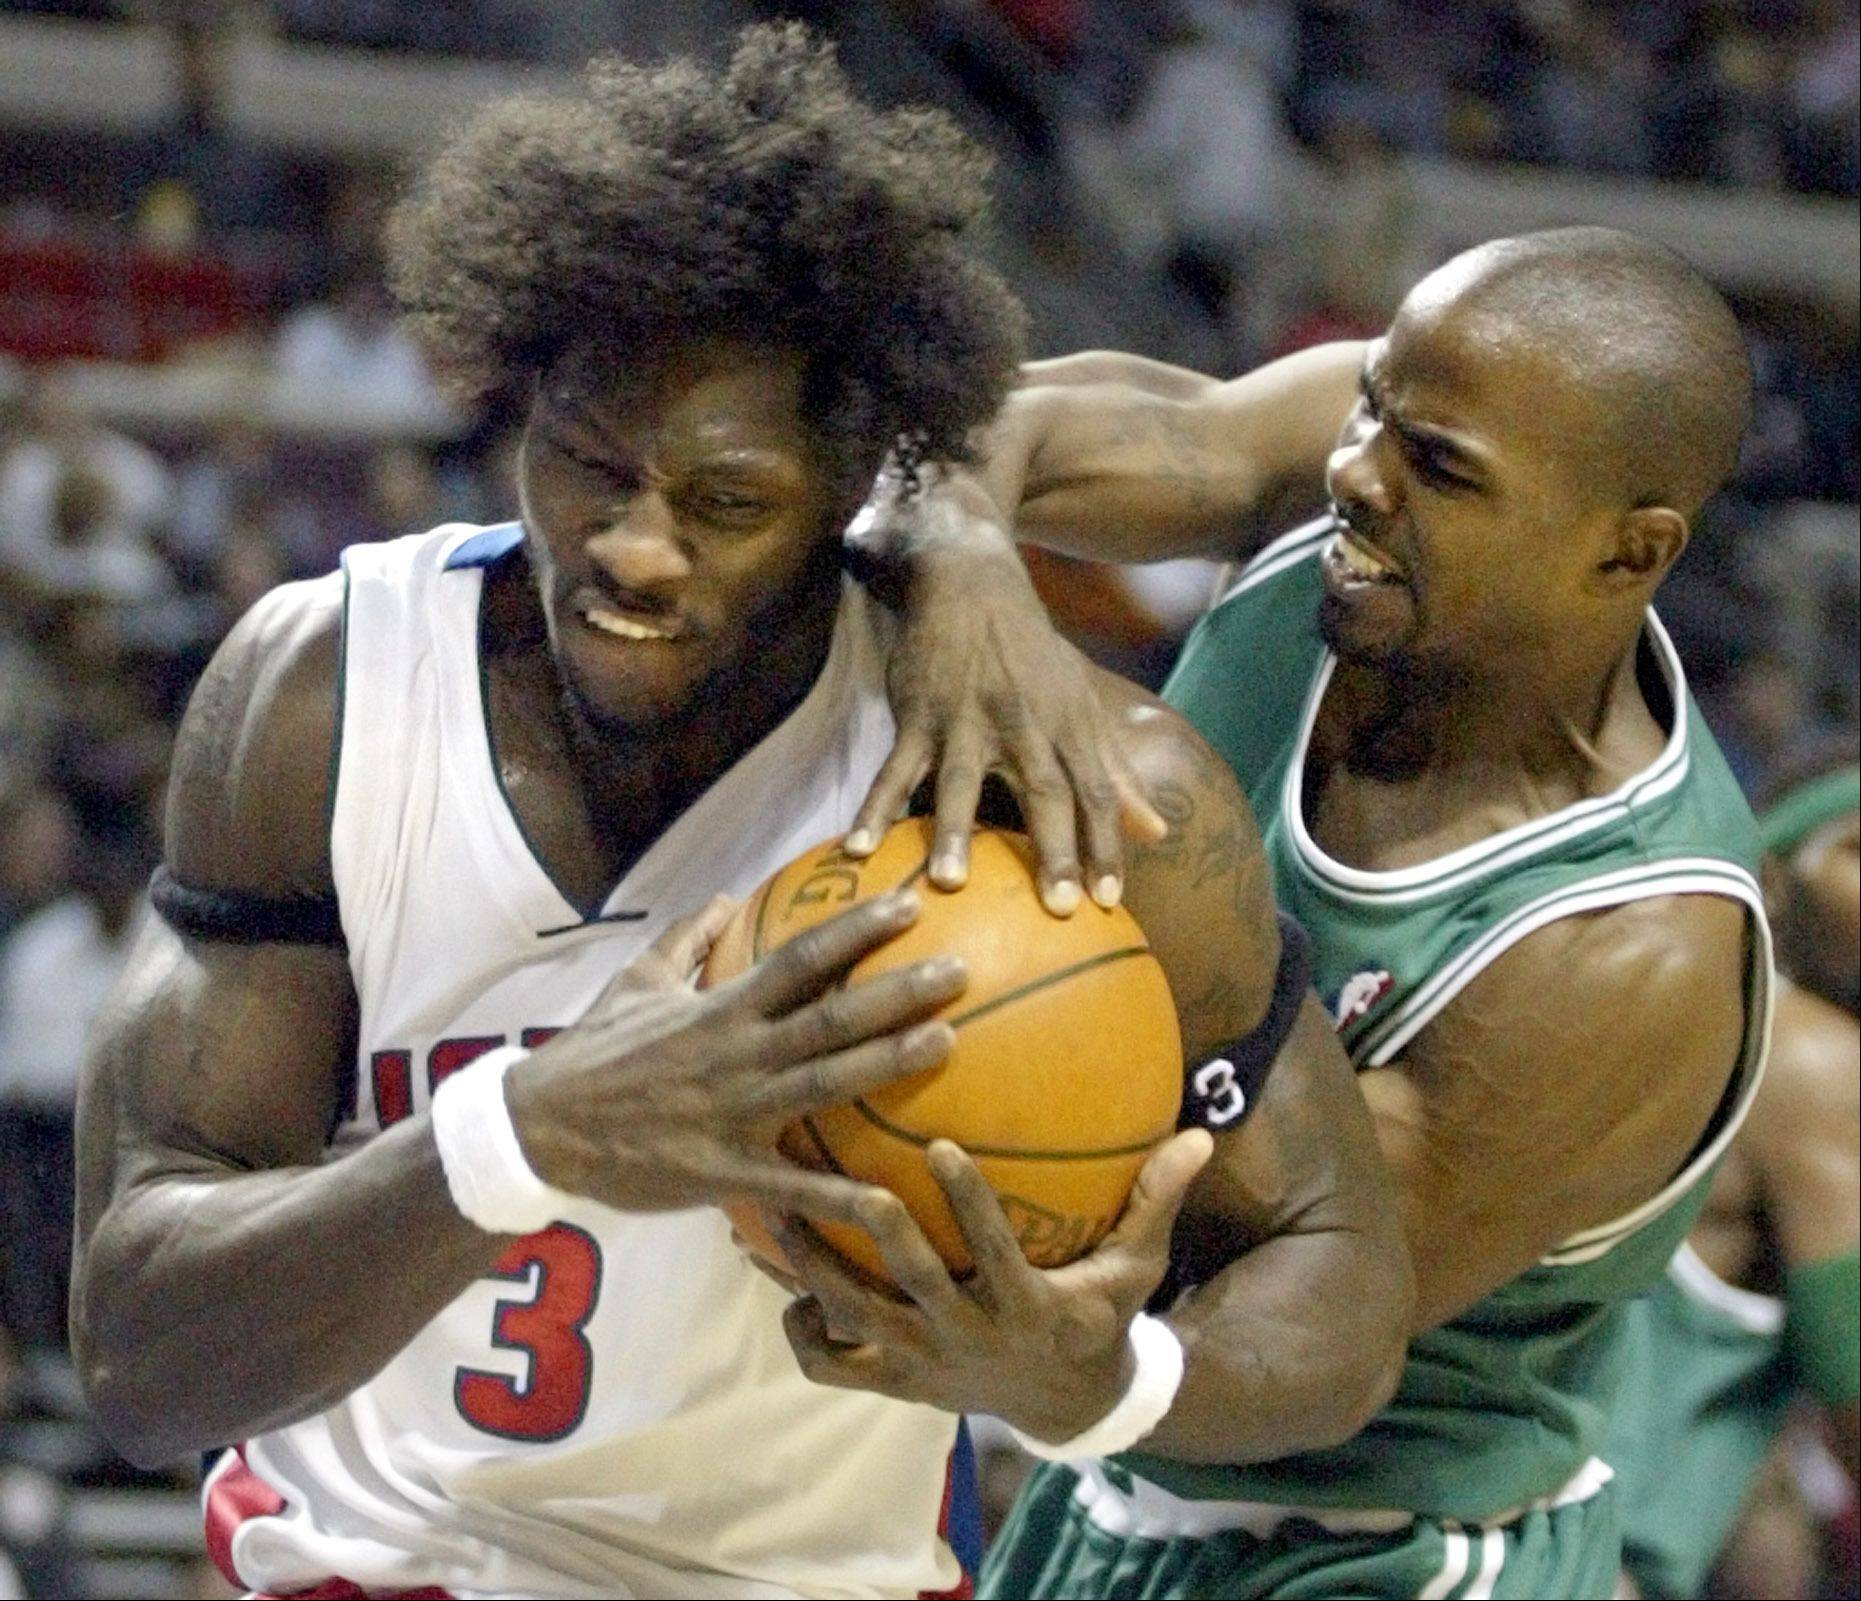 Mike James, right, who has played for 10 different NBA teamsD etroit Pistons forward Ben Wallace (3) battles Boston Celtics guard Mike James for the ball in the second half of the Pistons 96-88 win Wednesday, Nov. 5, 2003, in Auburn Hills, Mich.